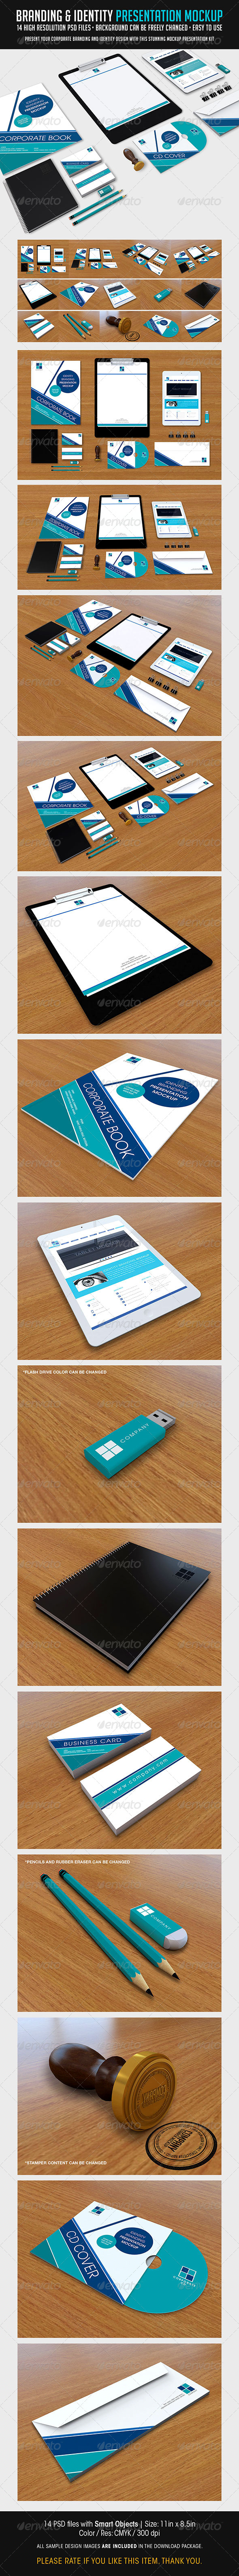 GraphicRiver Branding And Identity Presentation Mockup 7187821